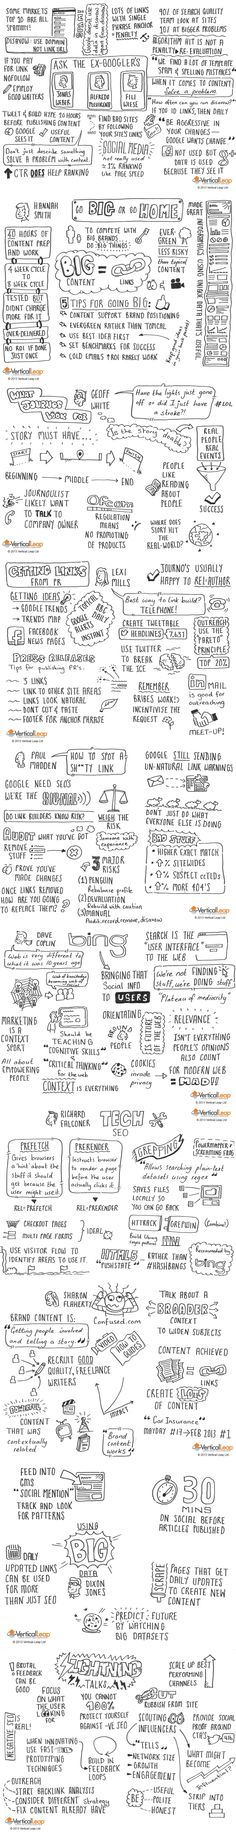 Planning effective Marketing - Sketchnotes (Take Aways) From BrightonSEO